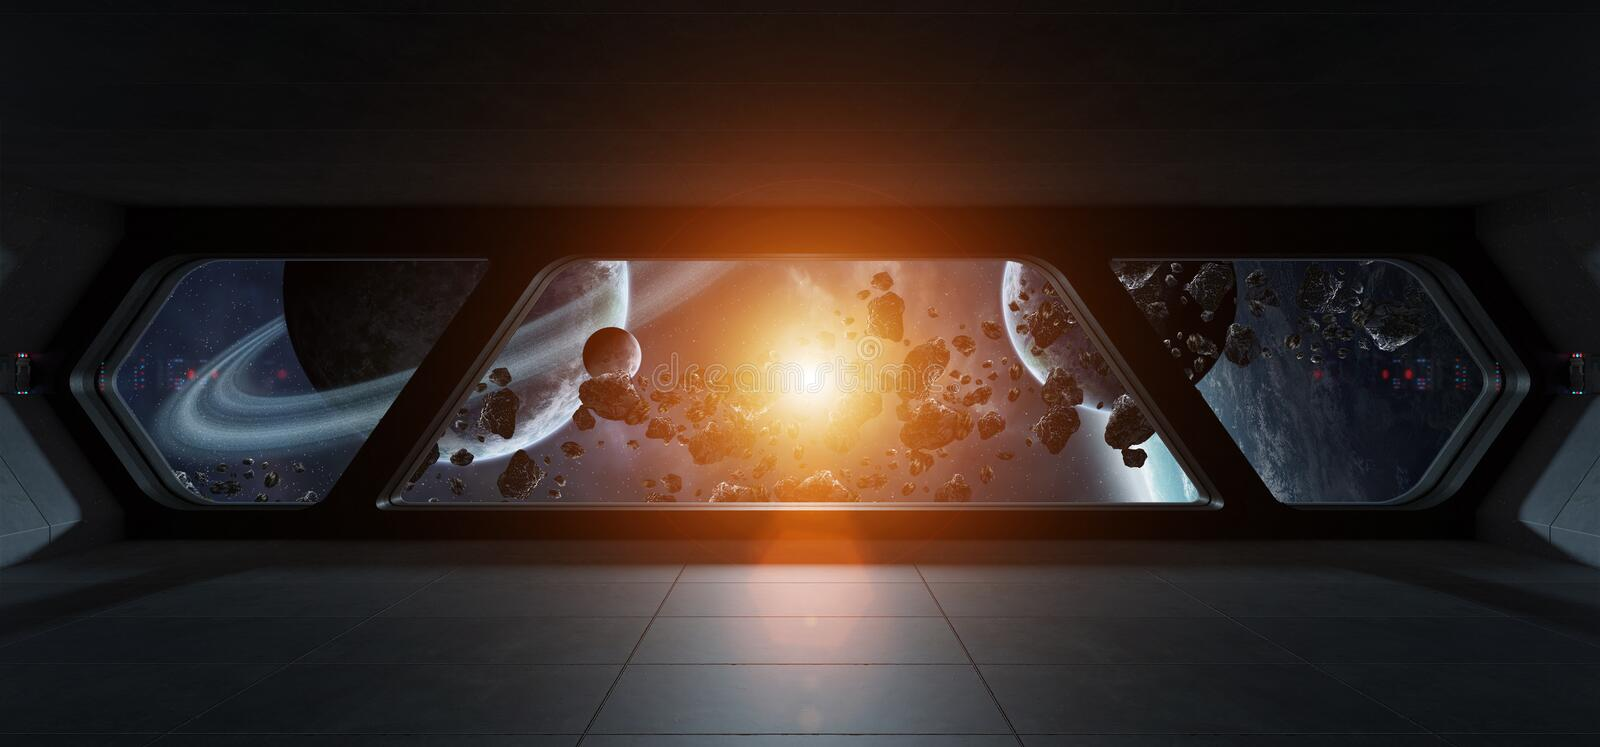 Spaceship futuristic interior with view on exoplanet stock illustration